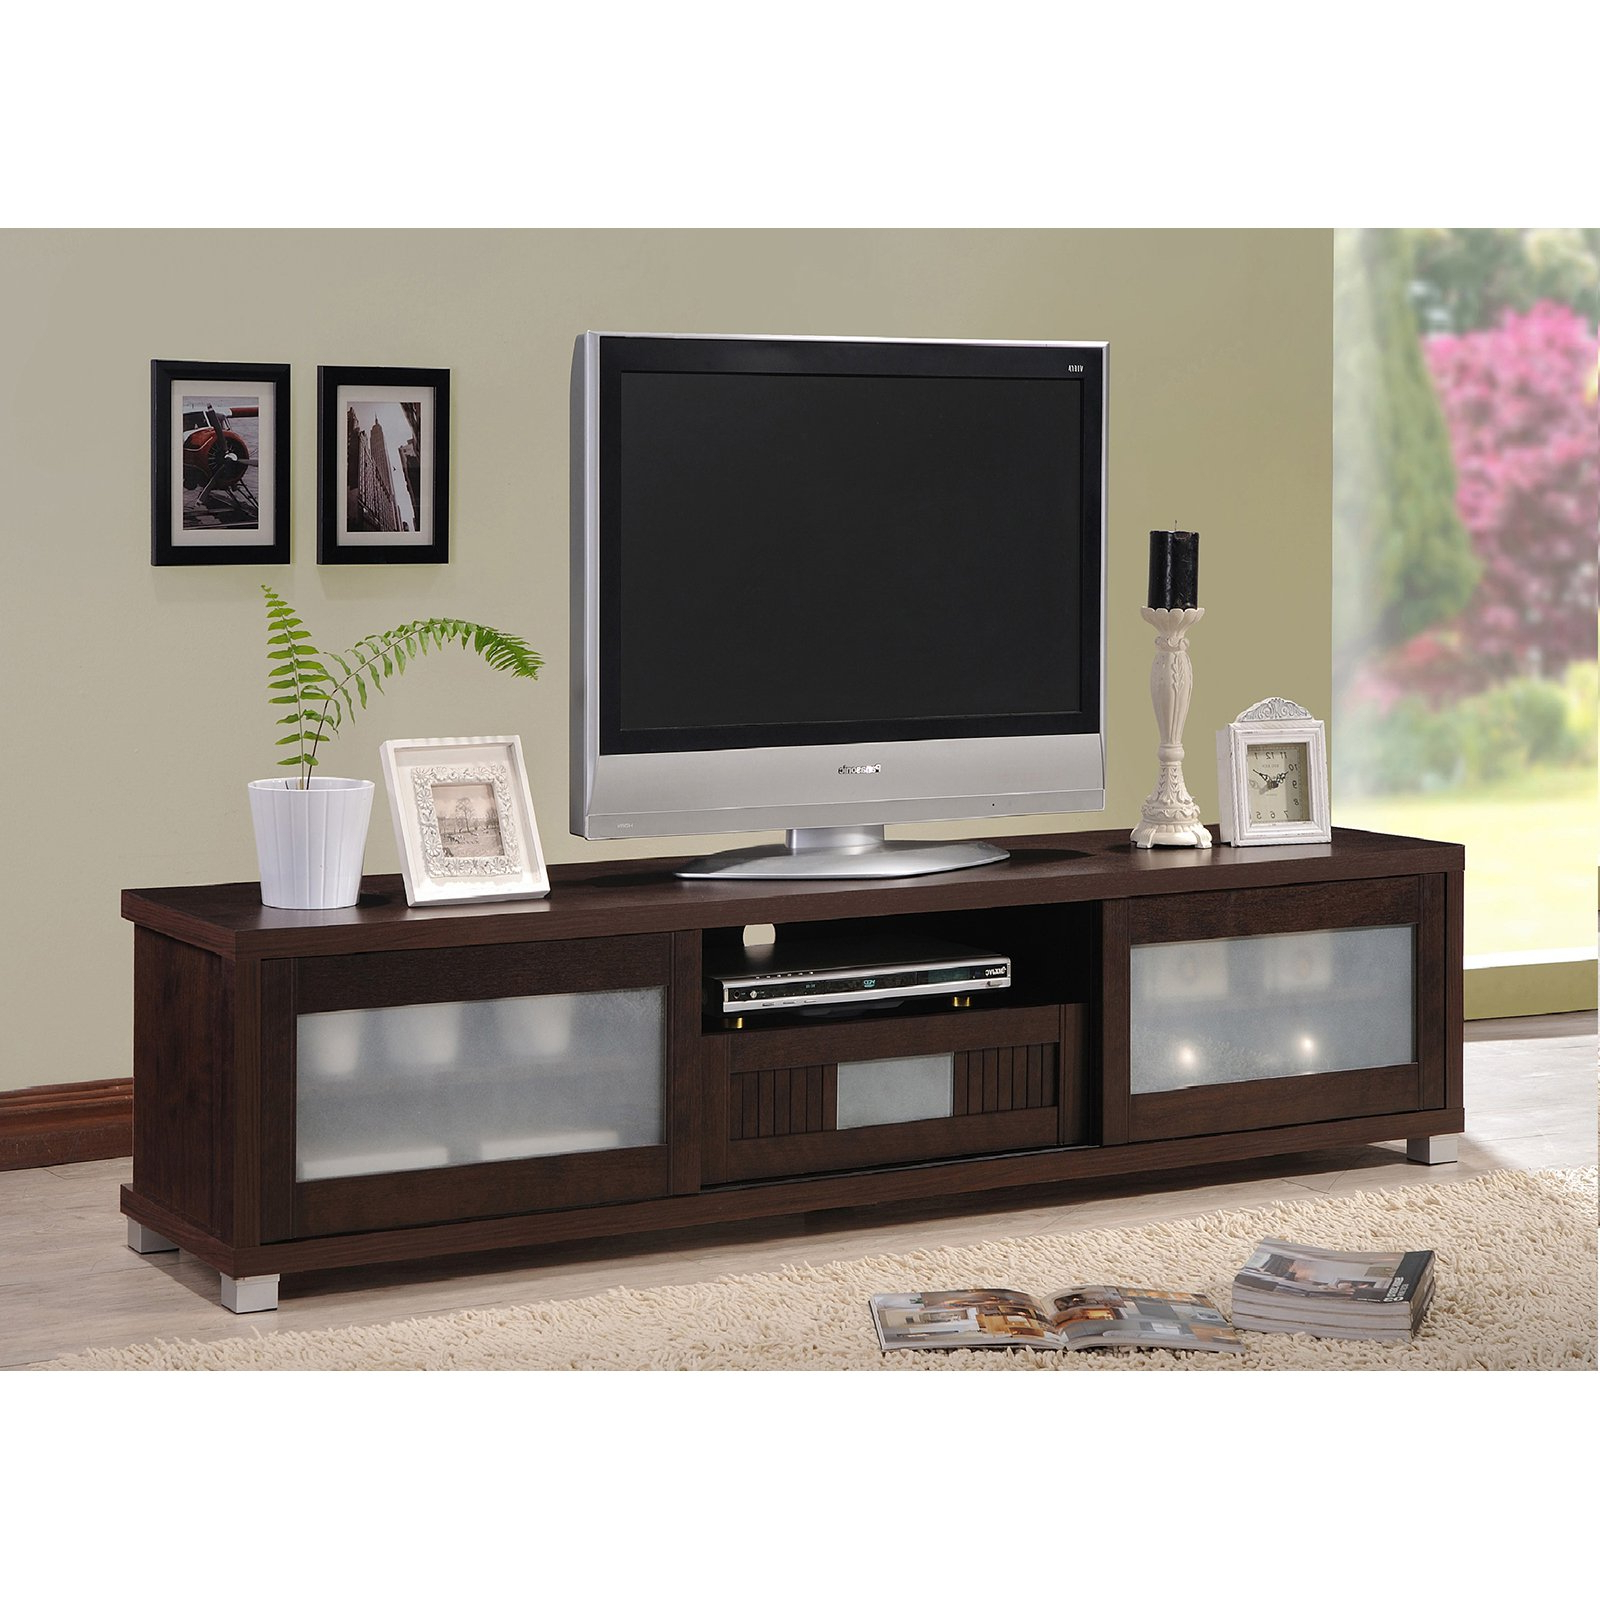 Favorite Dixon White 58 Inch Tv Stands Intended For Baxton Studio Tv Cabinet Table Wales Stand Espresso At Home With (View 12 of 20)